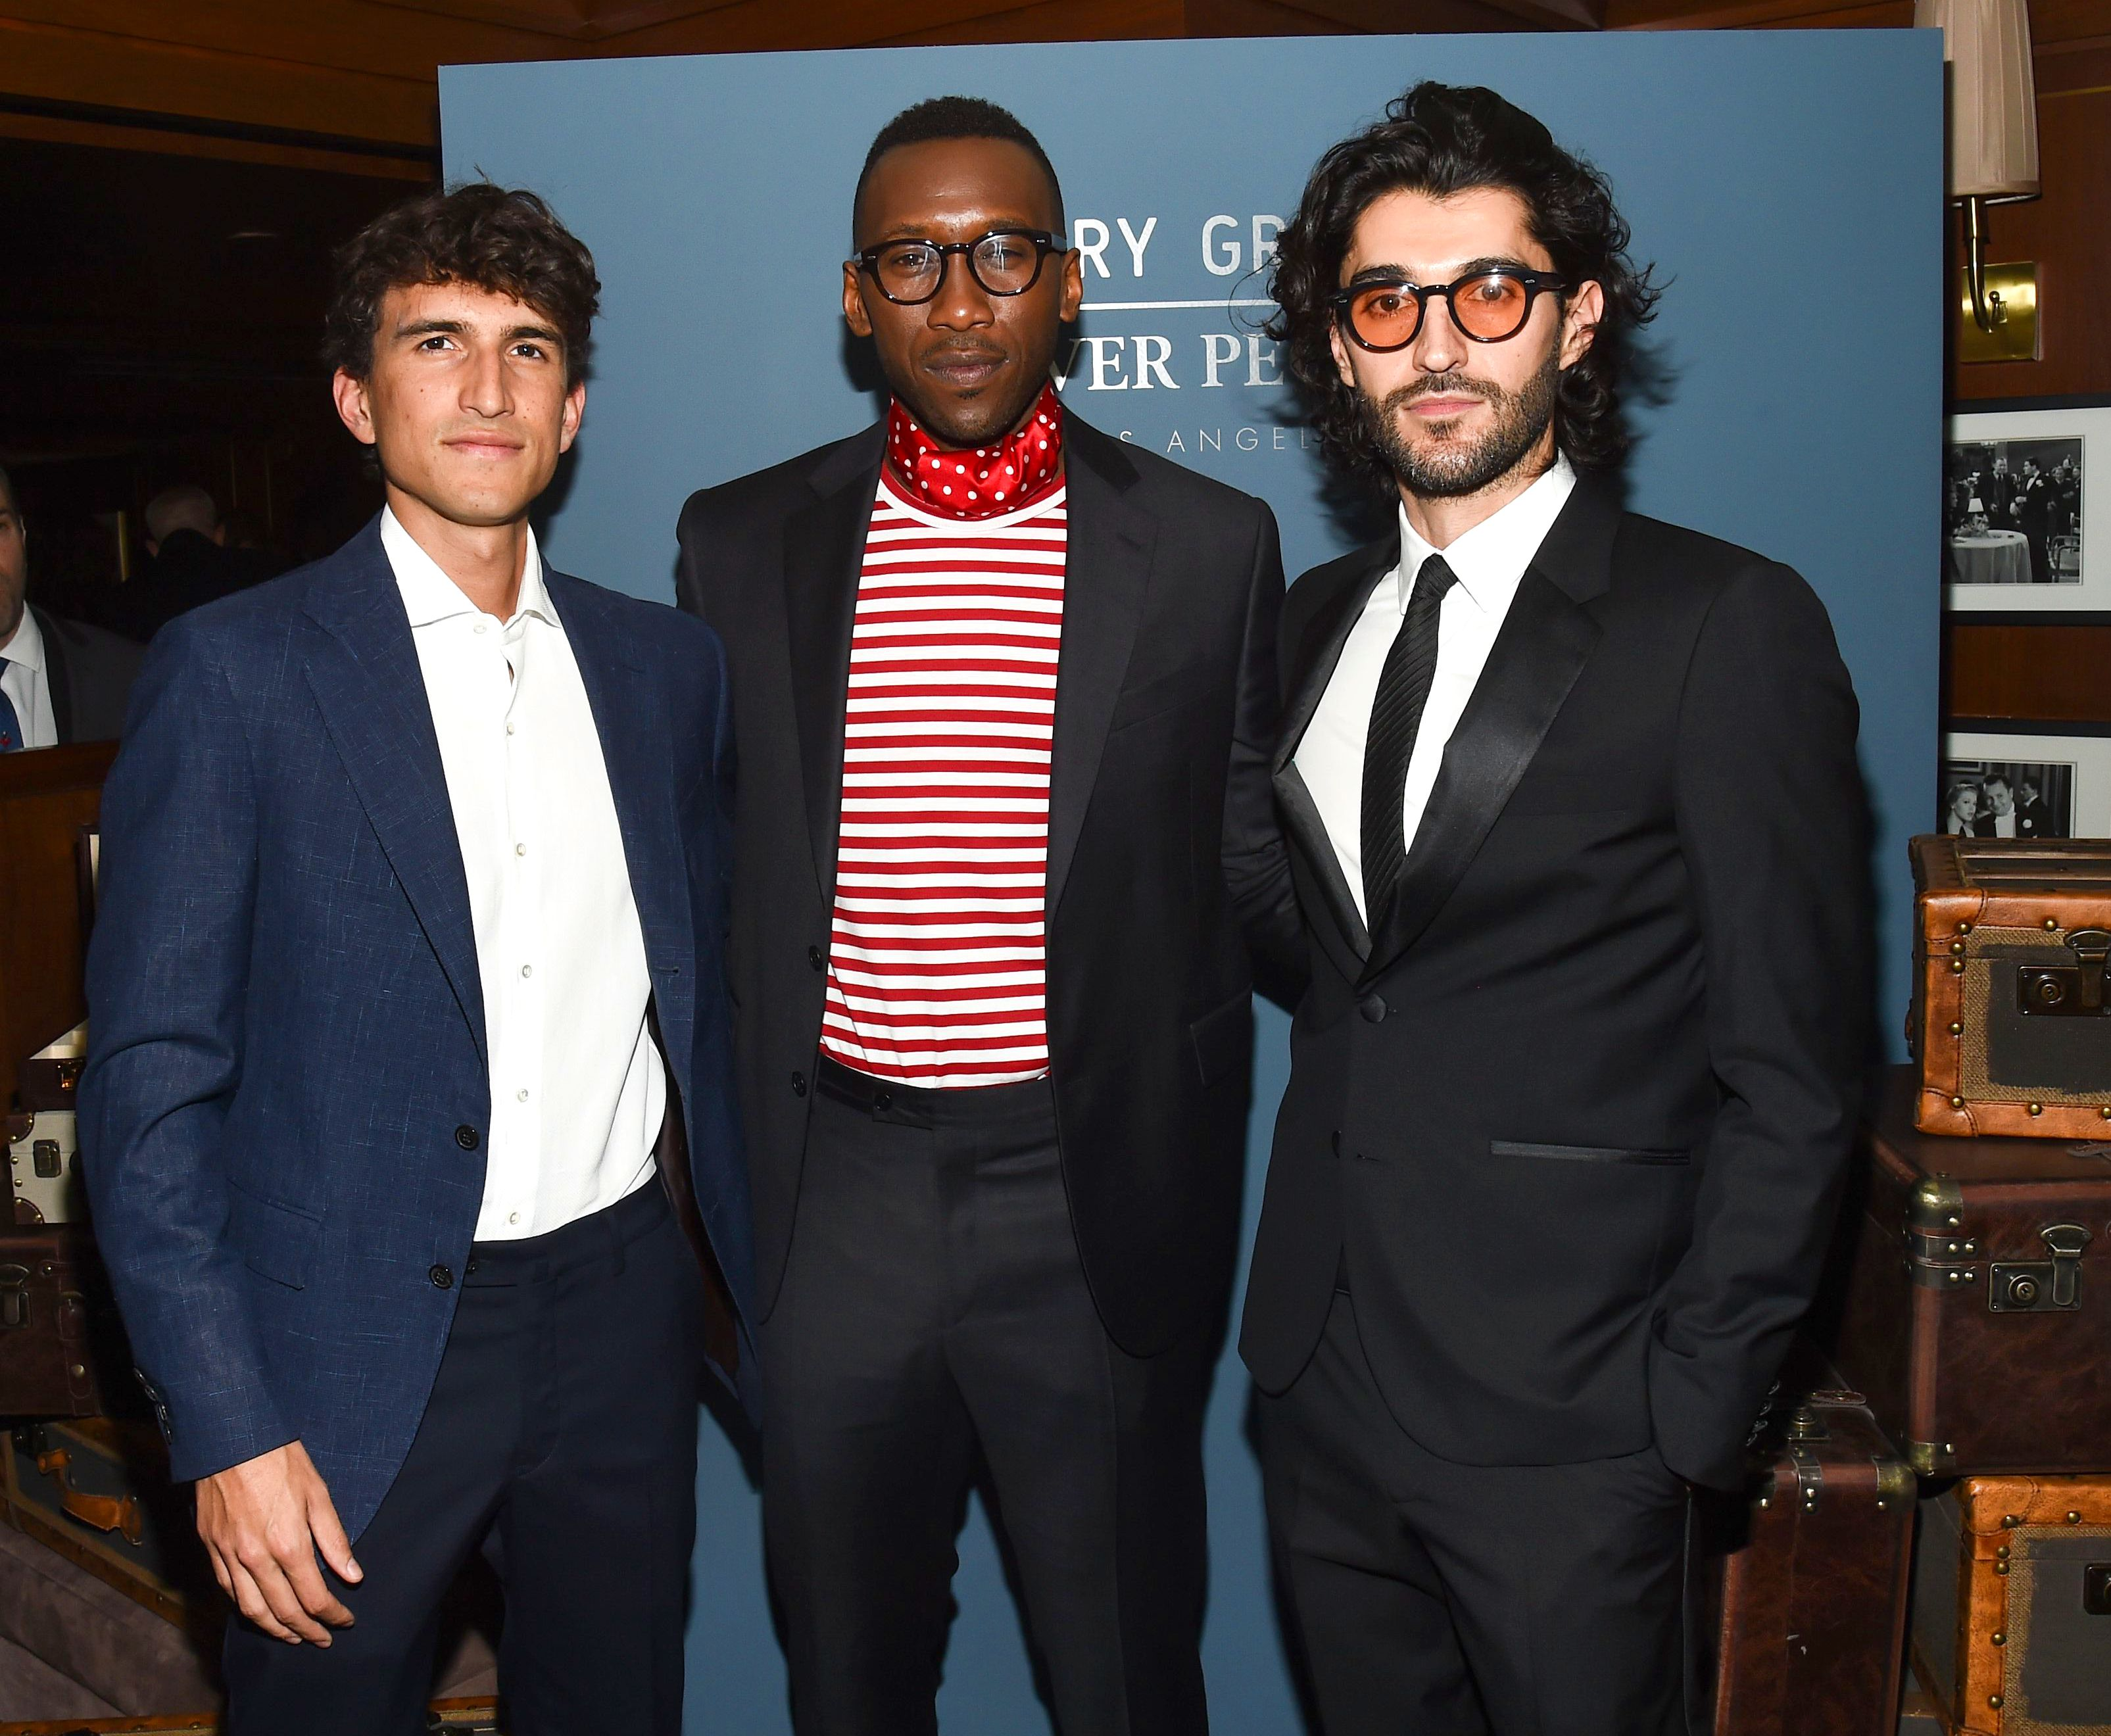 Rocco Basilico, Mahershala Ali and Giampiero TagliaferriOliver Peoples x Cary Grant Dinner Party, Los Angeles, USA - 04 Apr 2019